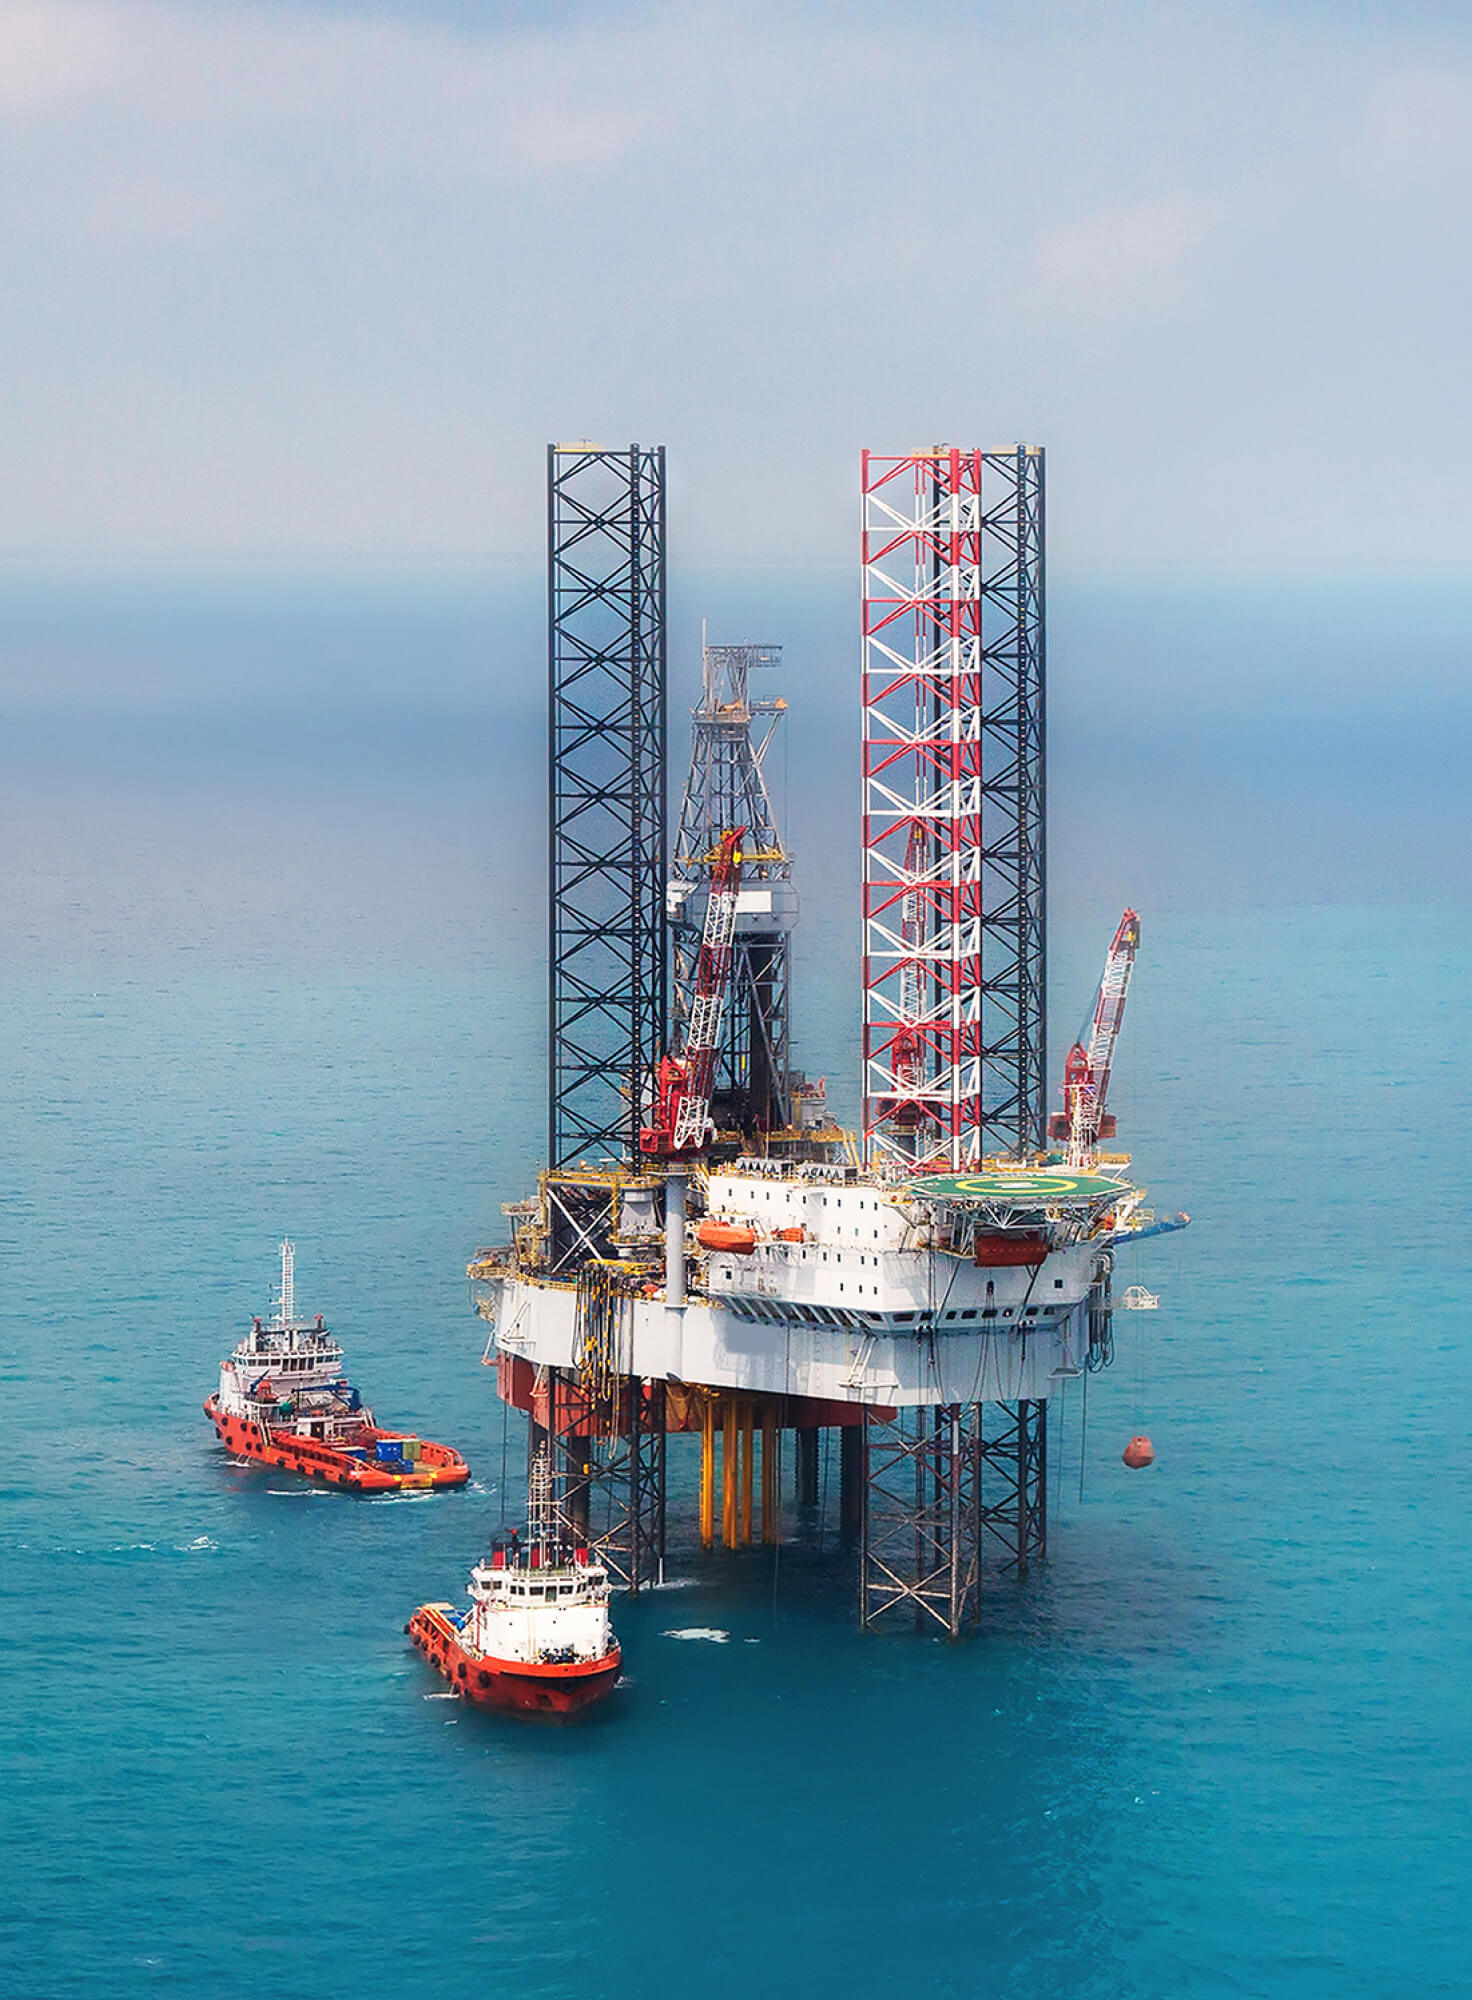 Equipping the oil and gas industry with effective communication